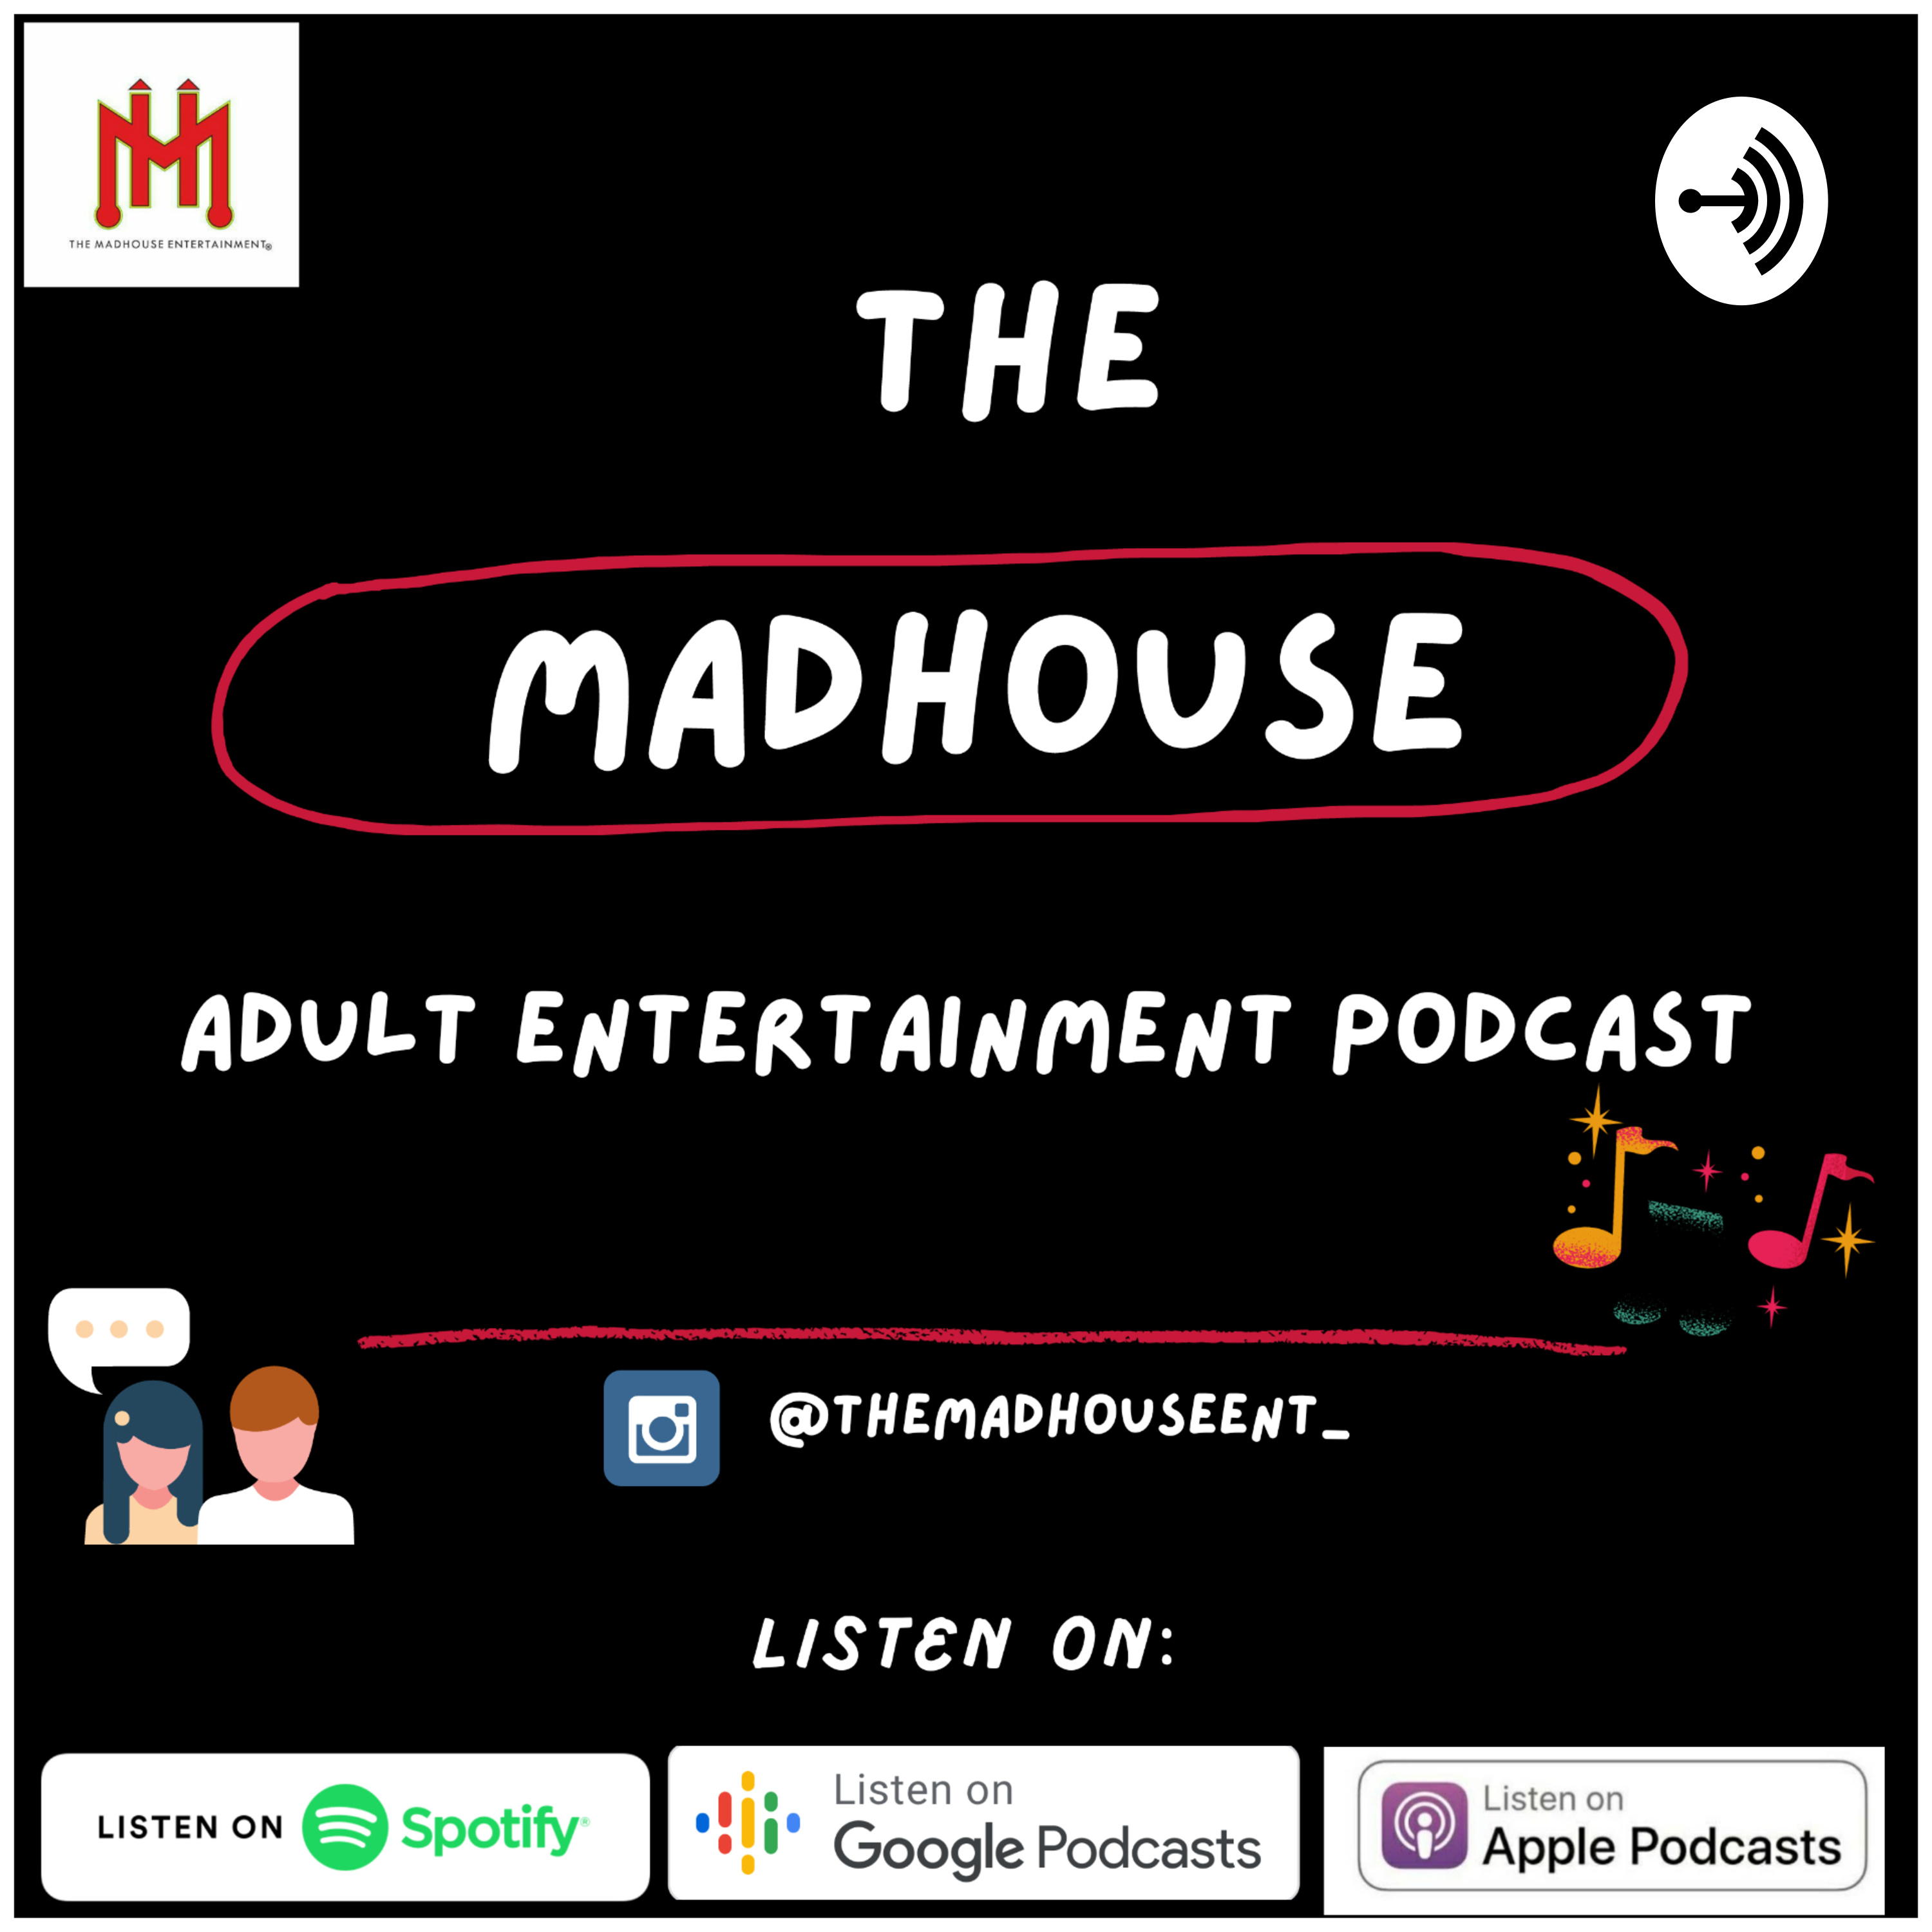 The Madhouse Adult Entertainment Pod 🎙️ on Jamit